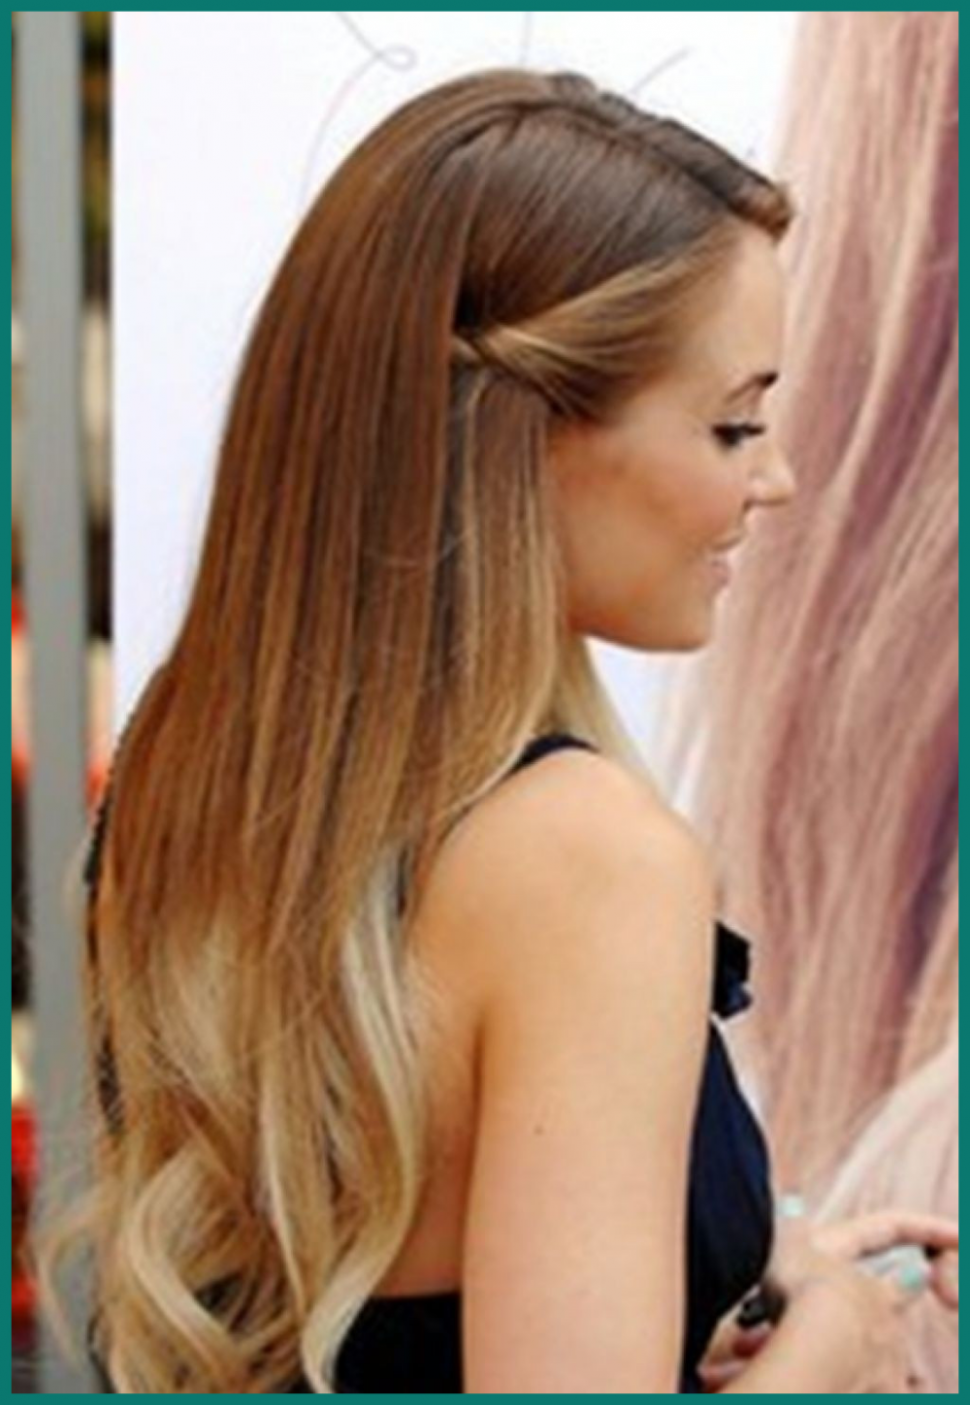 Straight Hairstyles For Prom New Easy Straight Hairstyles Women Prom Straight Hairstyles